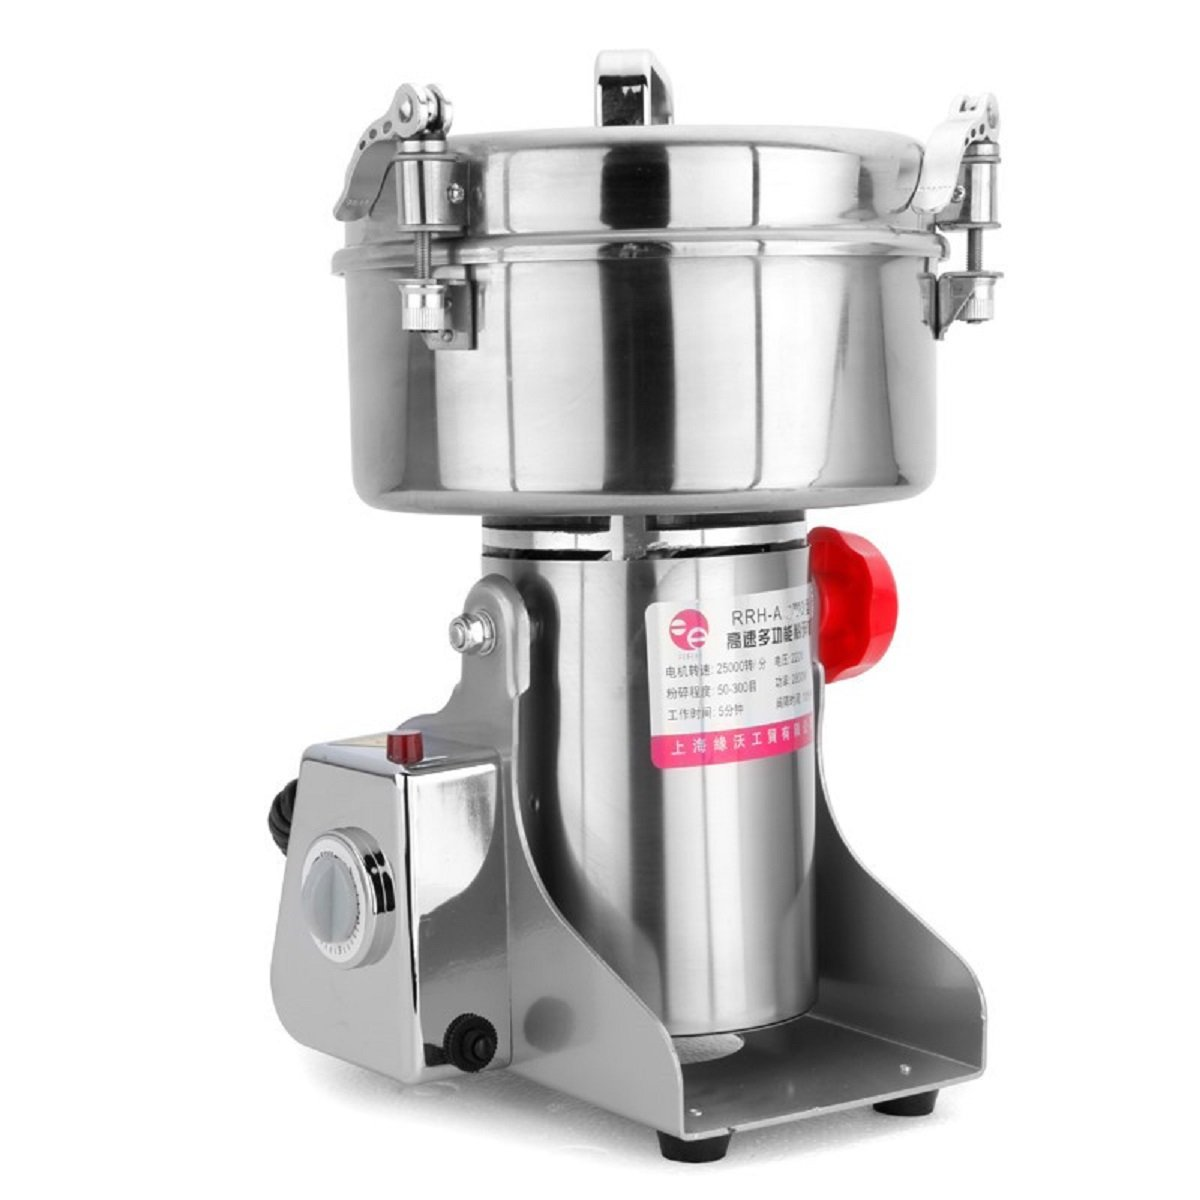 RRH 2000G Electric Grain Grinder Mill Spice Nut and Coffee Grinder 25000 RPM Stainless Steel Mill Grinder 4000W Powder Machine 50-300 Mesh, for Herbs Corn Sesame Soybean Pepper Bait Feed by RRH